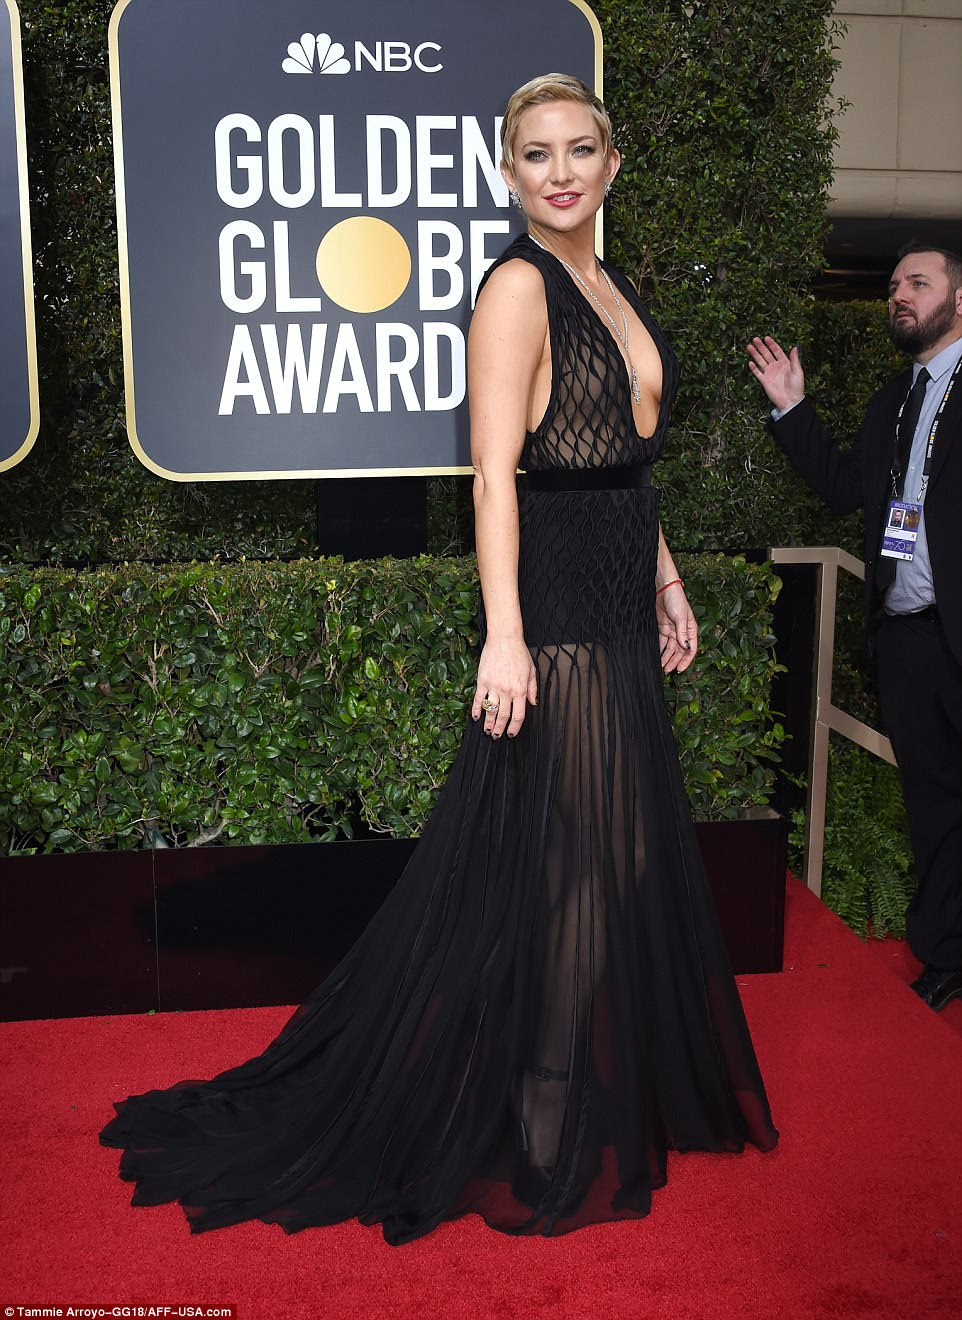 Cheeky! Kate Hudson showed off her sculpted legs as well as her cleavage in her sheer halter Valentino gown for the Globes